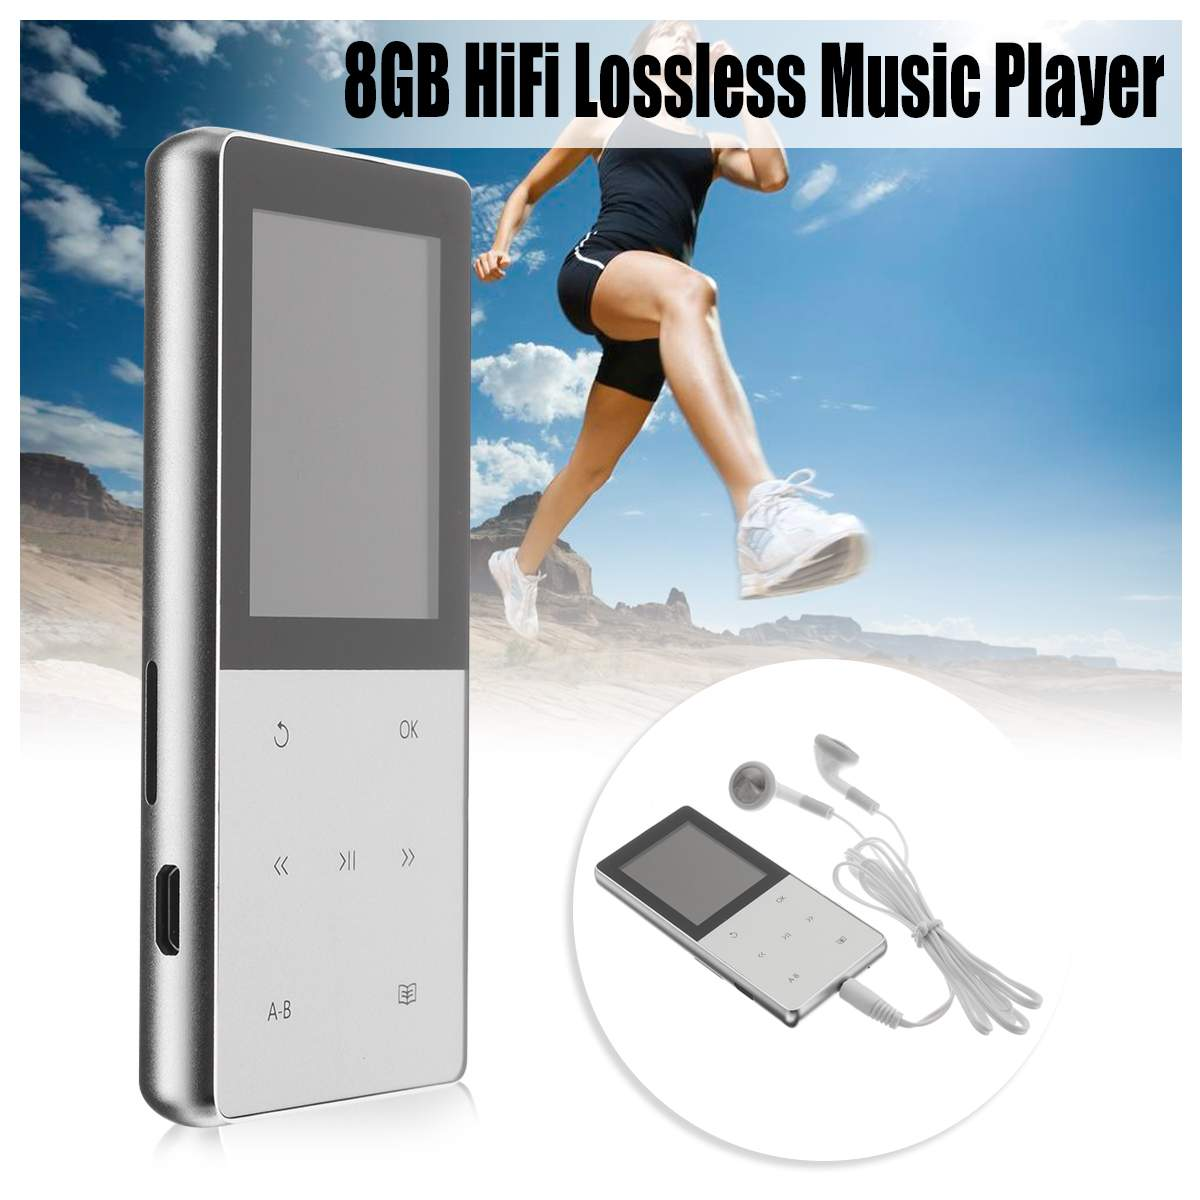 1.8inch Bluetooth Sport MP3 Player HiFi Lossless Music Player Portable Audio 8GB A6 TFT LED HiFi Screen FM USB SD with Earphone